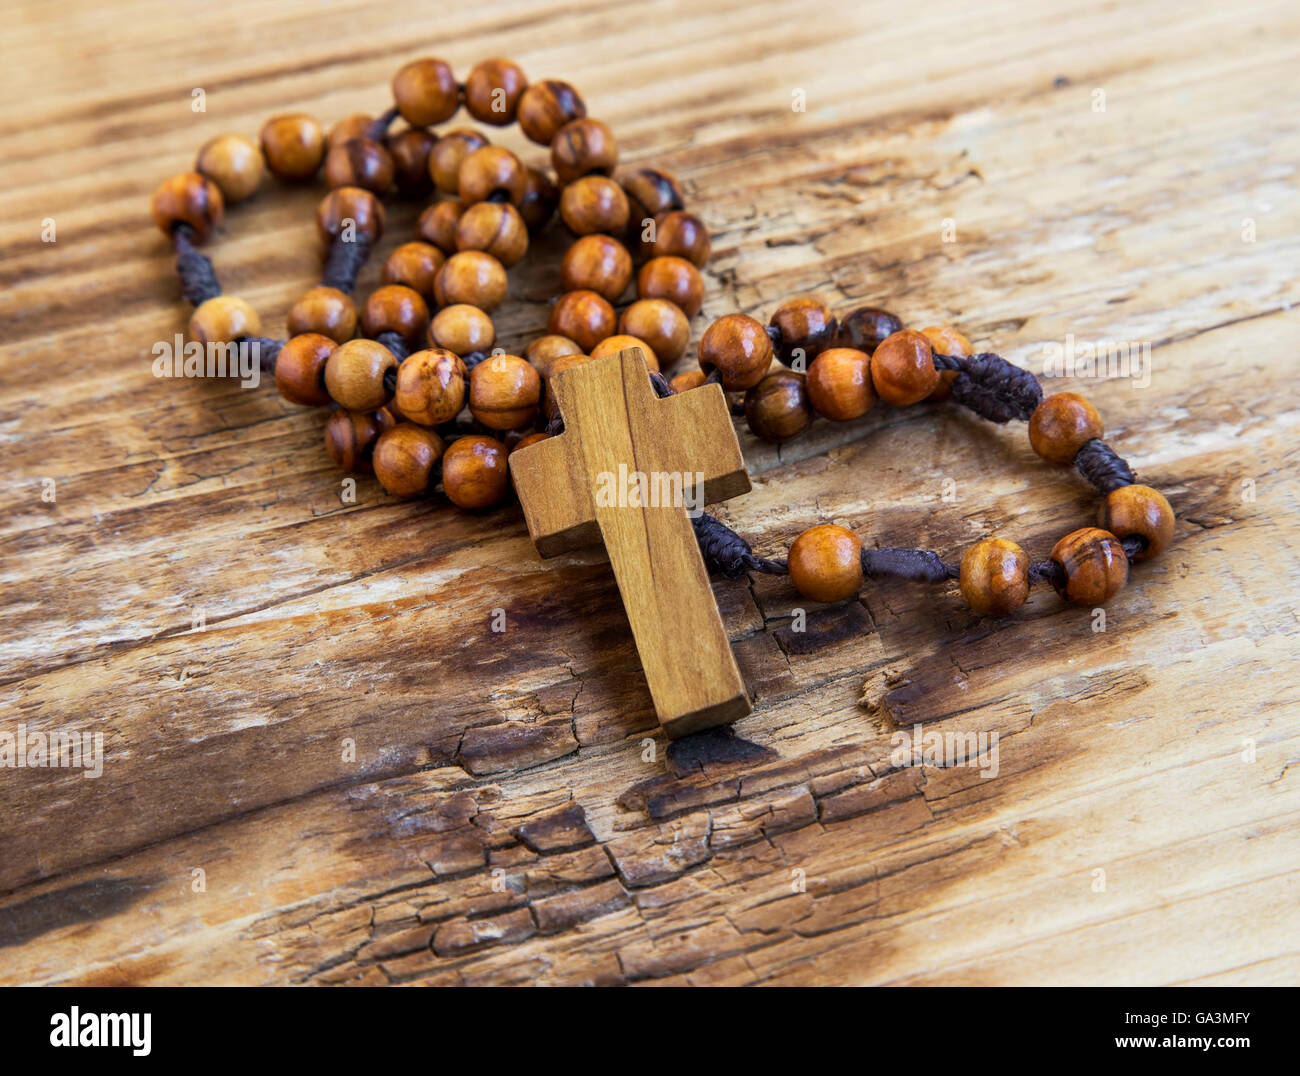 Wooden crucifix with rosary.Christianity symbol on wooden background - Stock Image